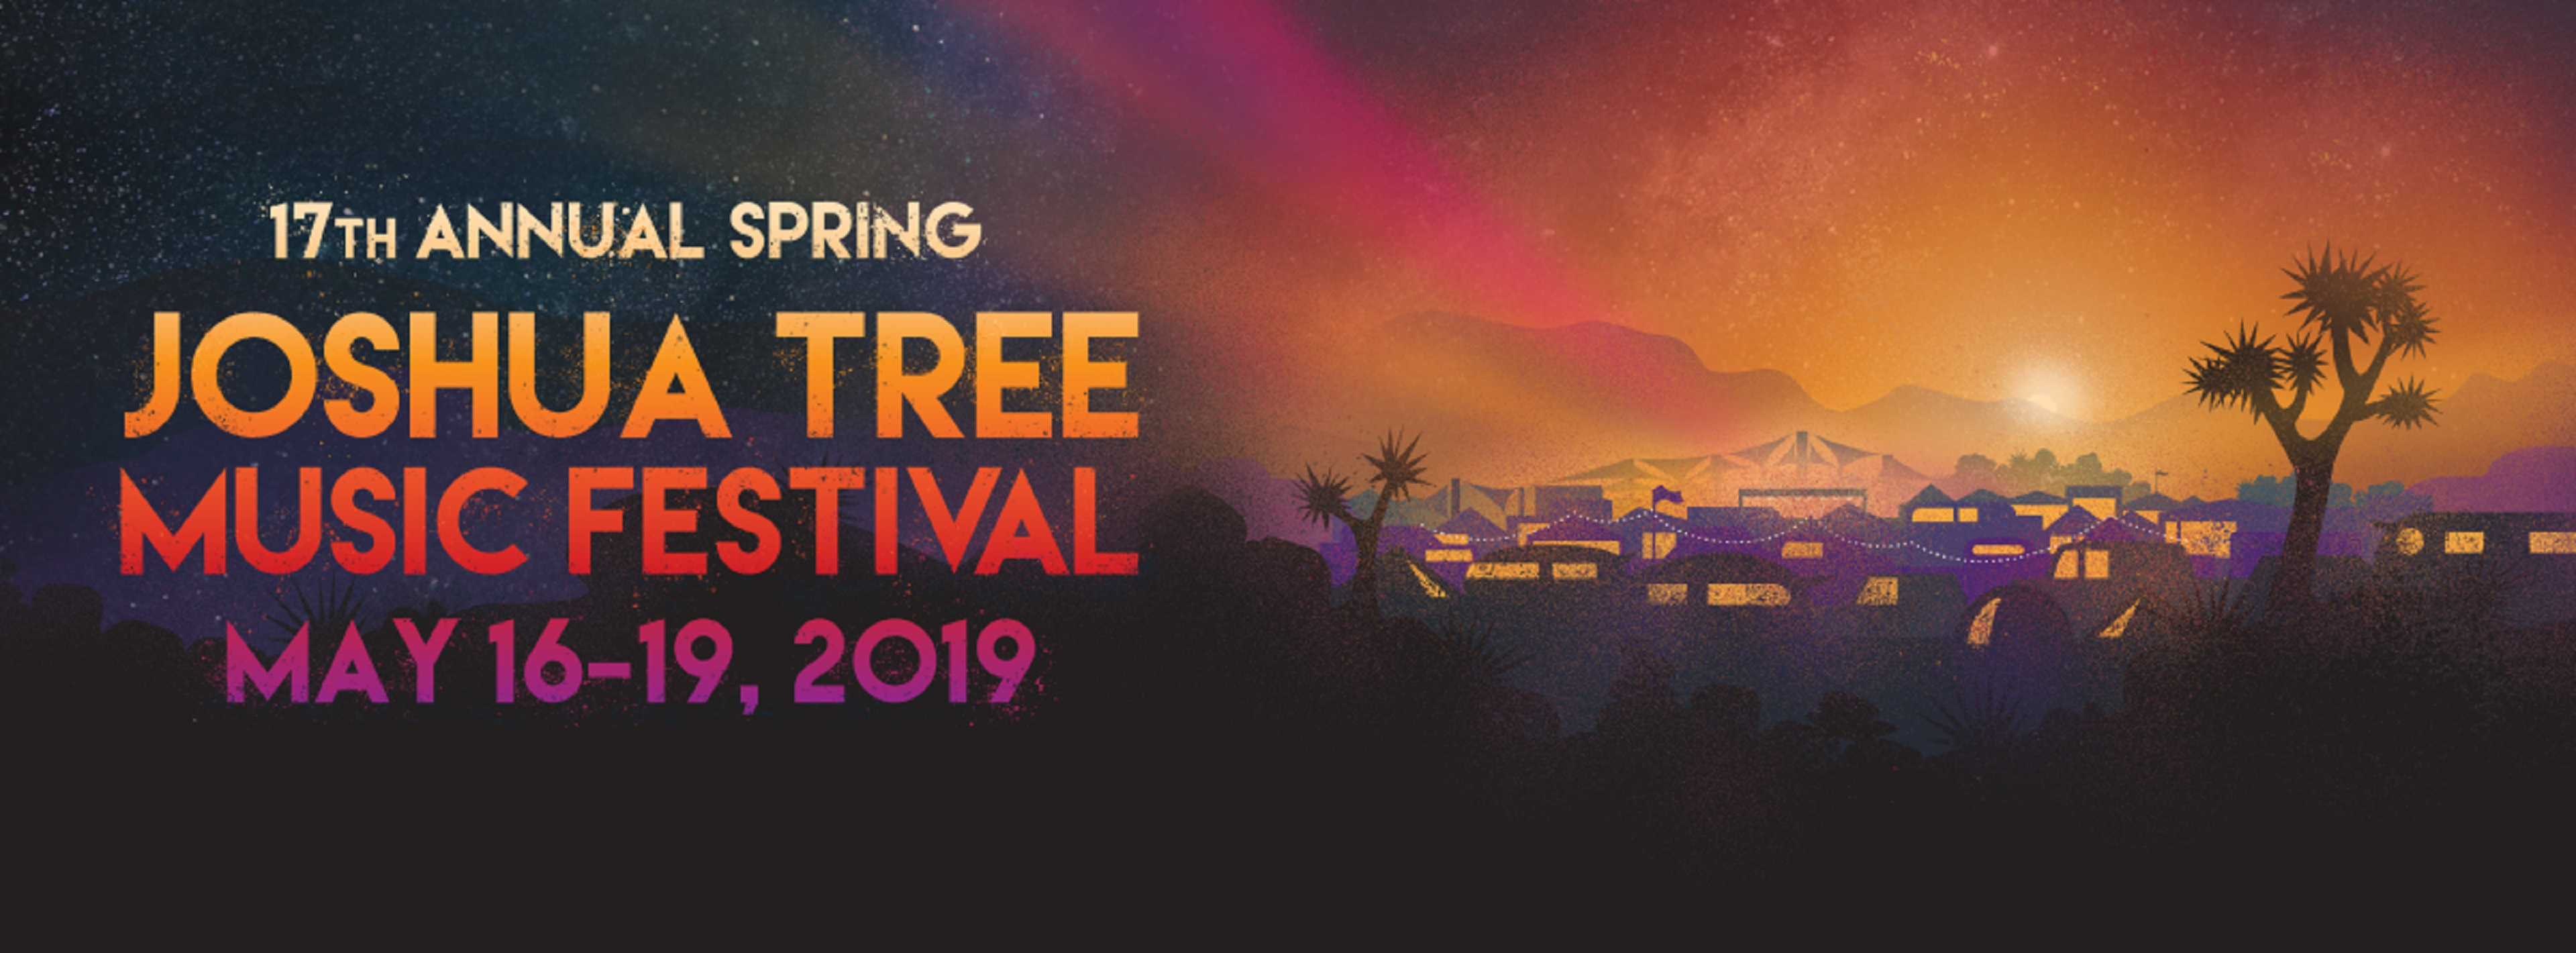 Joshua Tree Music Festival Announce Initial 2019 LineUp